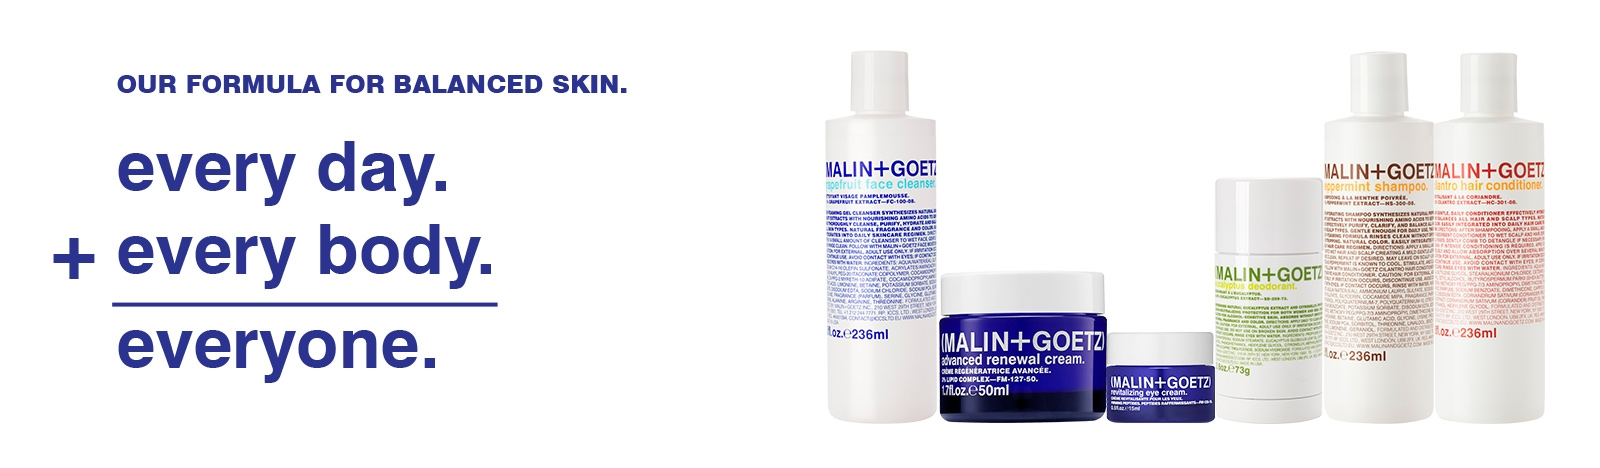 our formula for balanced skin